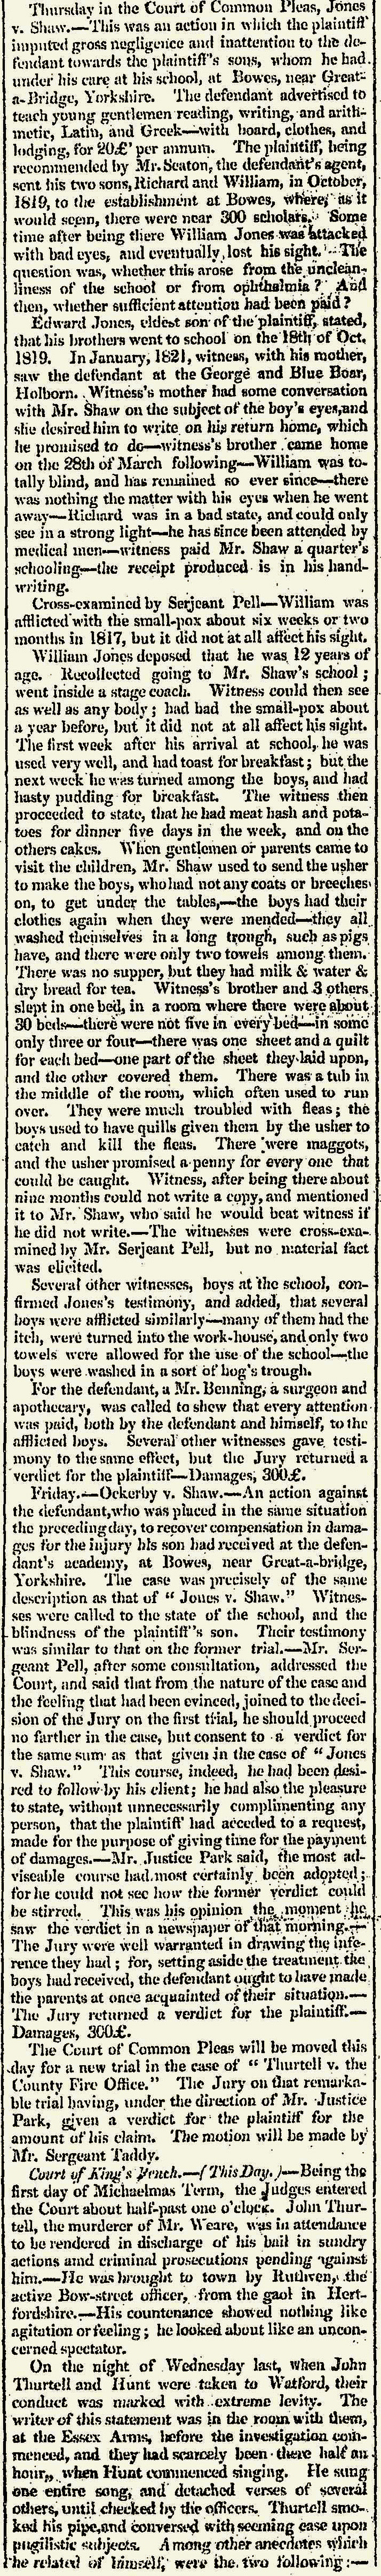 Newspaper Article: Trial of William Shaw, 1823